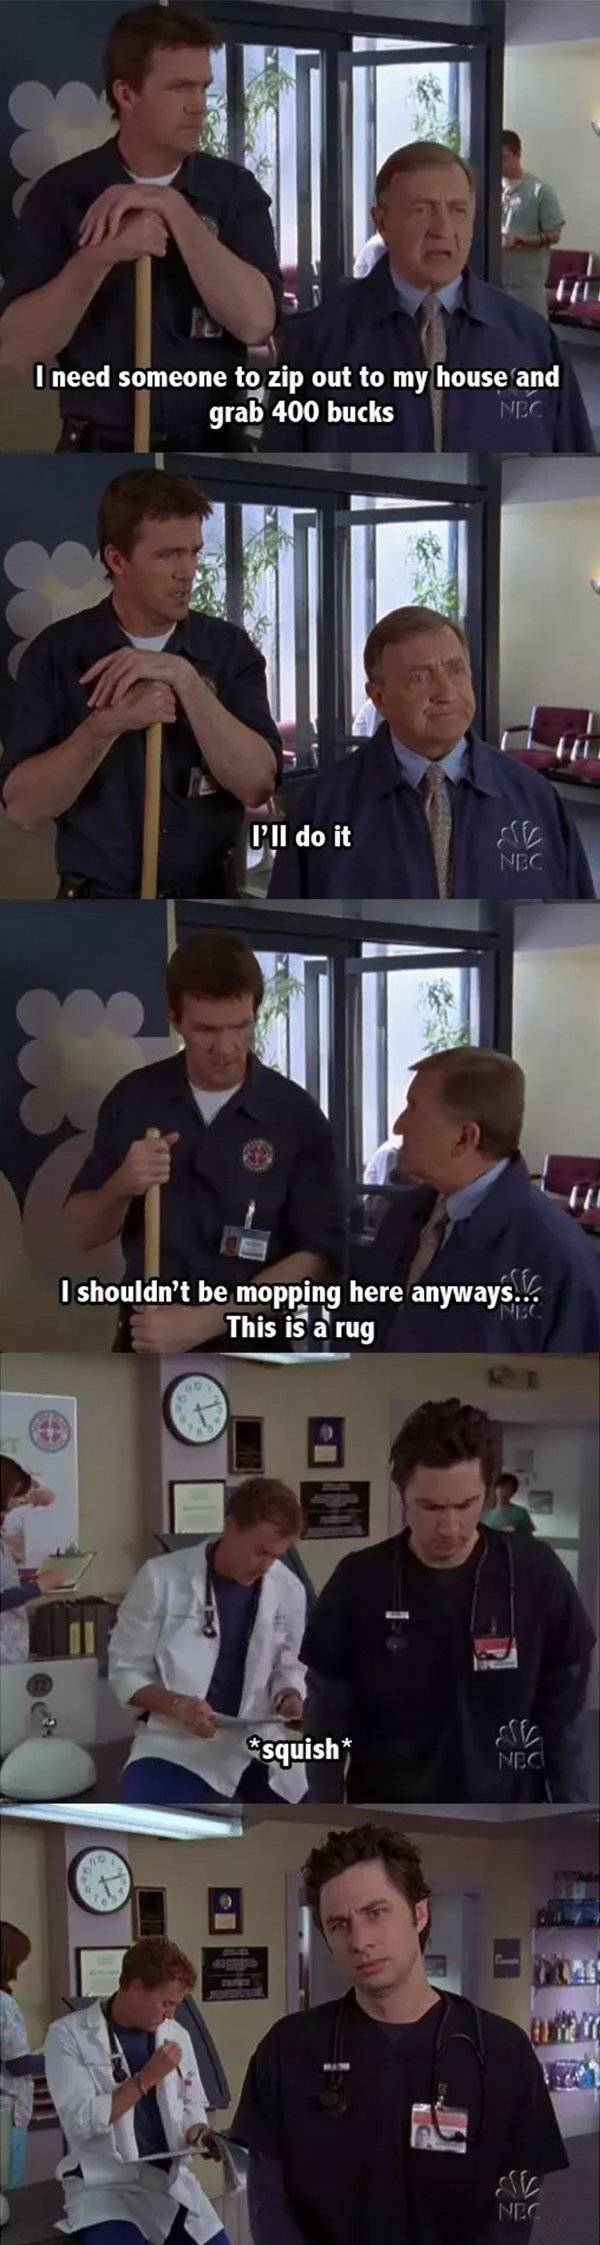 """The Janitor From """"Scrubs"""" Moments (32 pics)"""